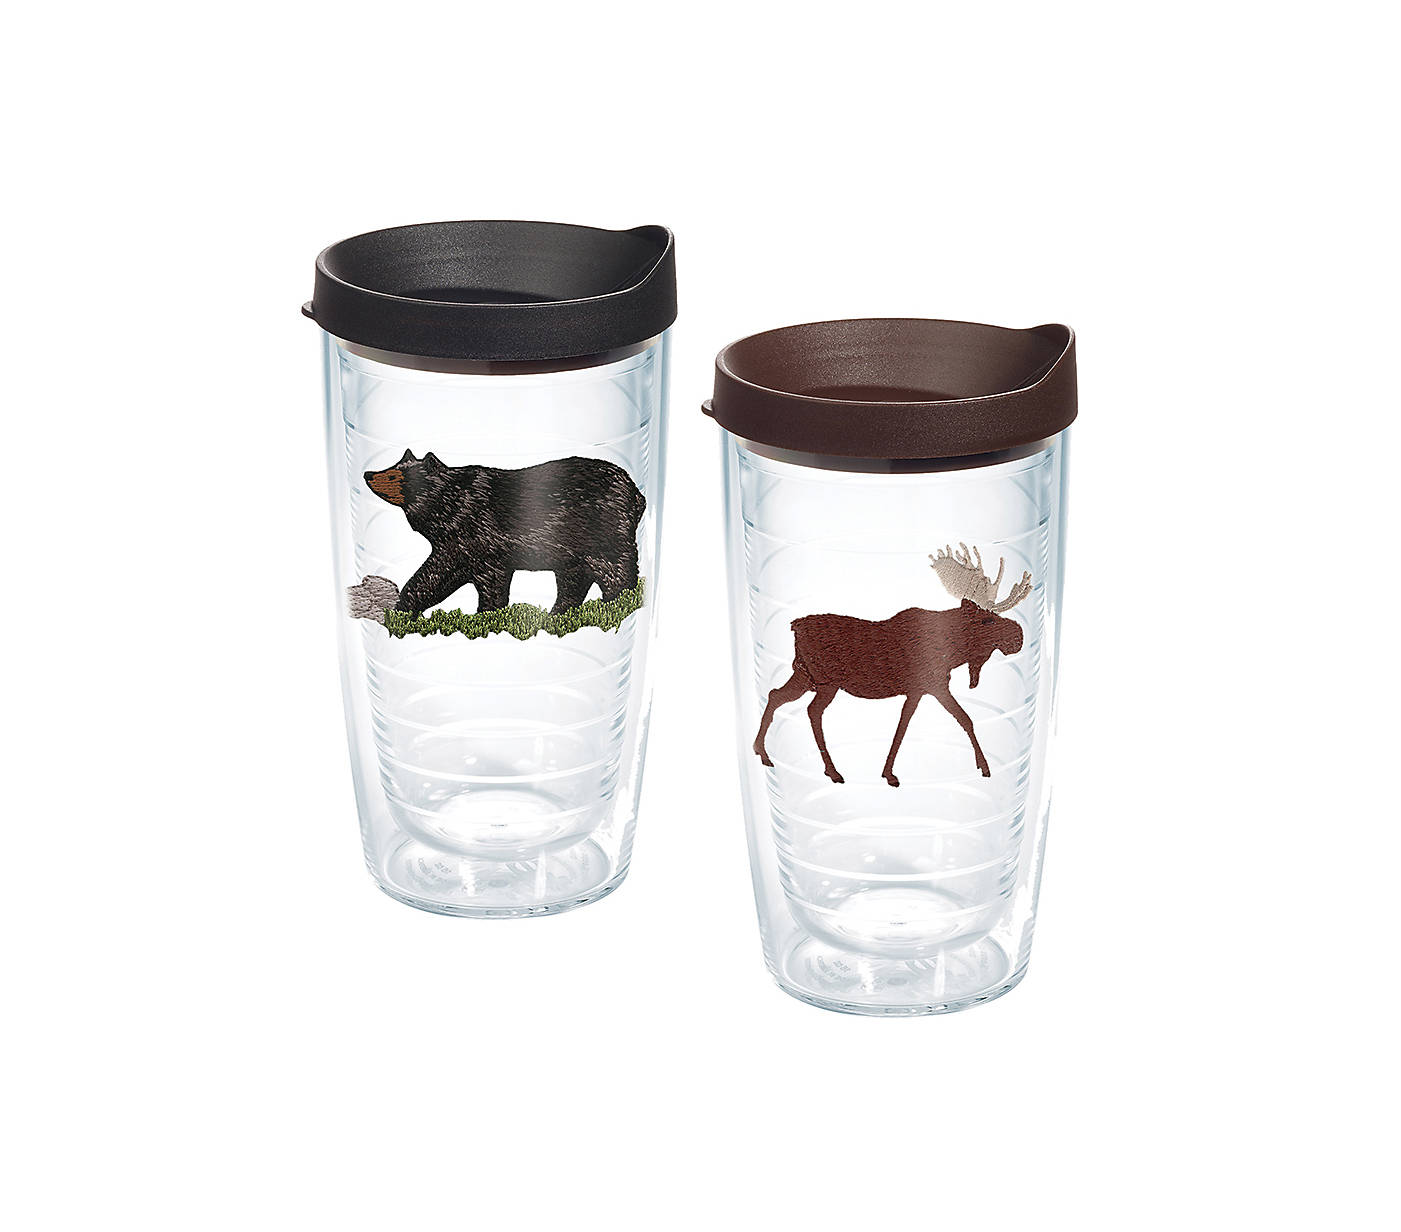 Tervis 2-Pack Gift Set